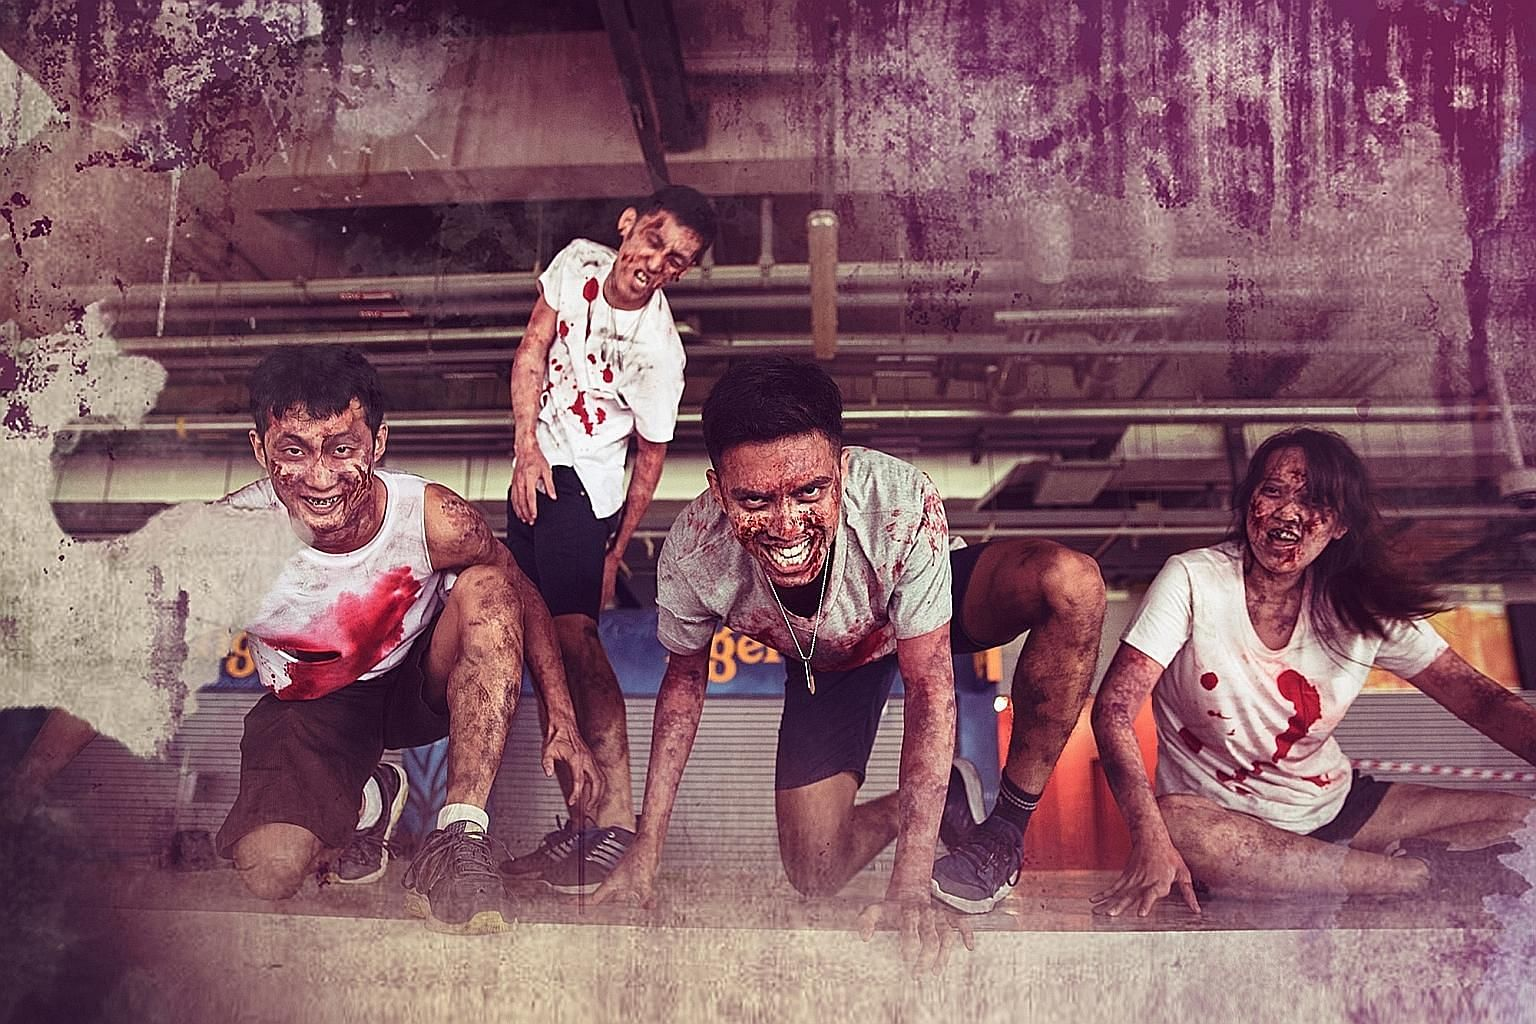 Zedtown is an immersive live-action survivor versus zombie game. In Zedtown Asia: Battle for Singapore, the city is overrun by zombies and players have to fight the undead, armed with Nerf blasters.